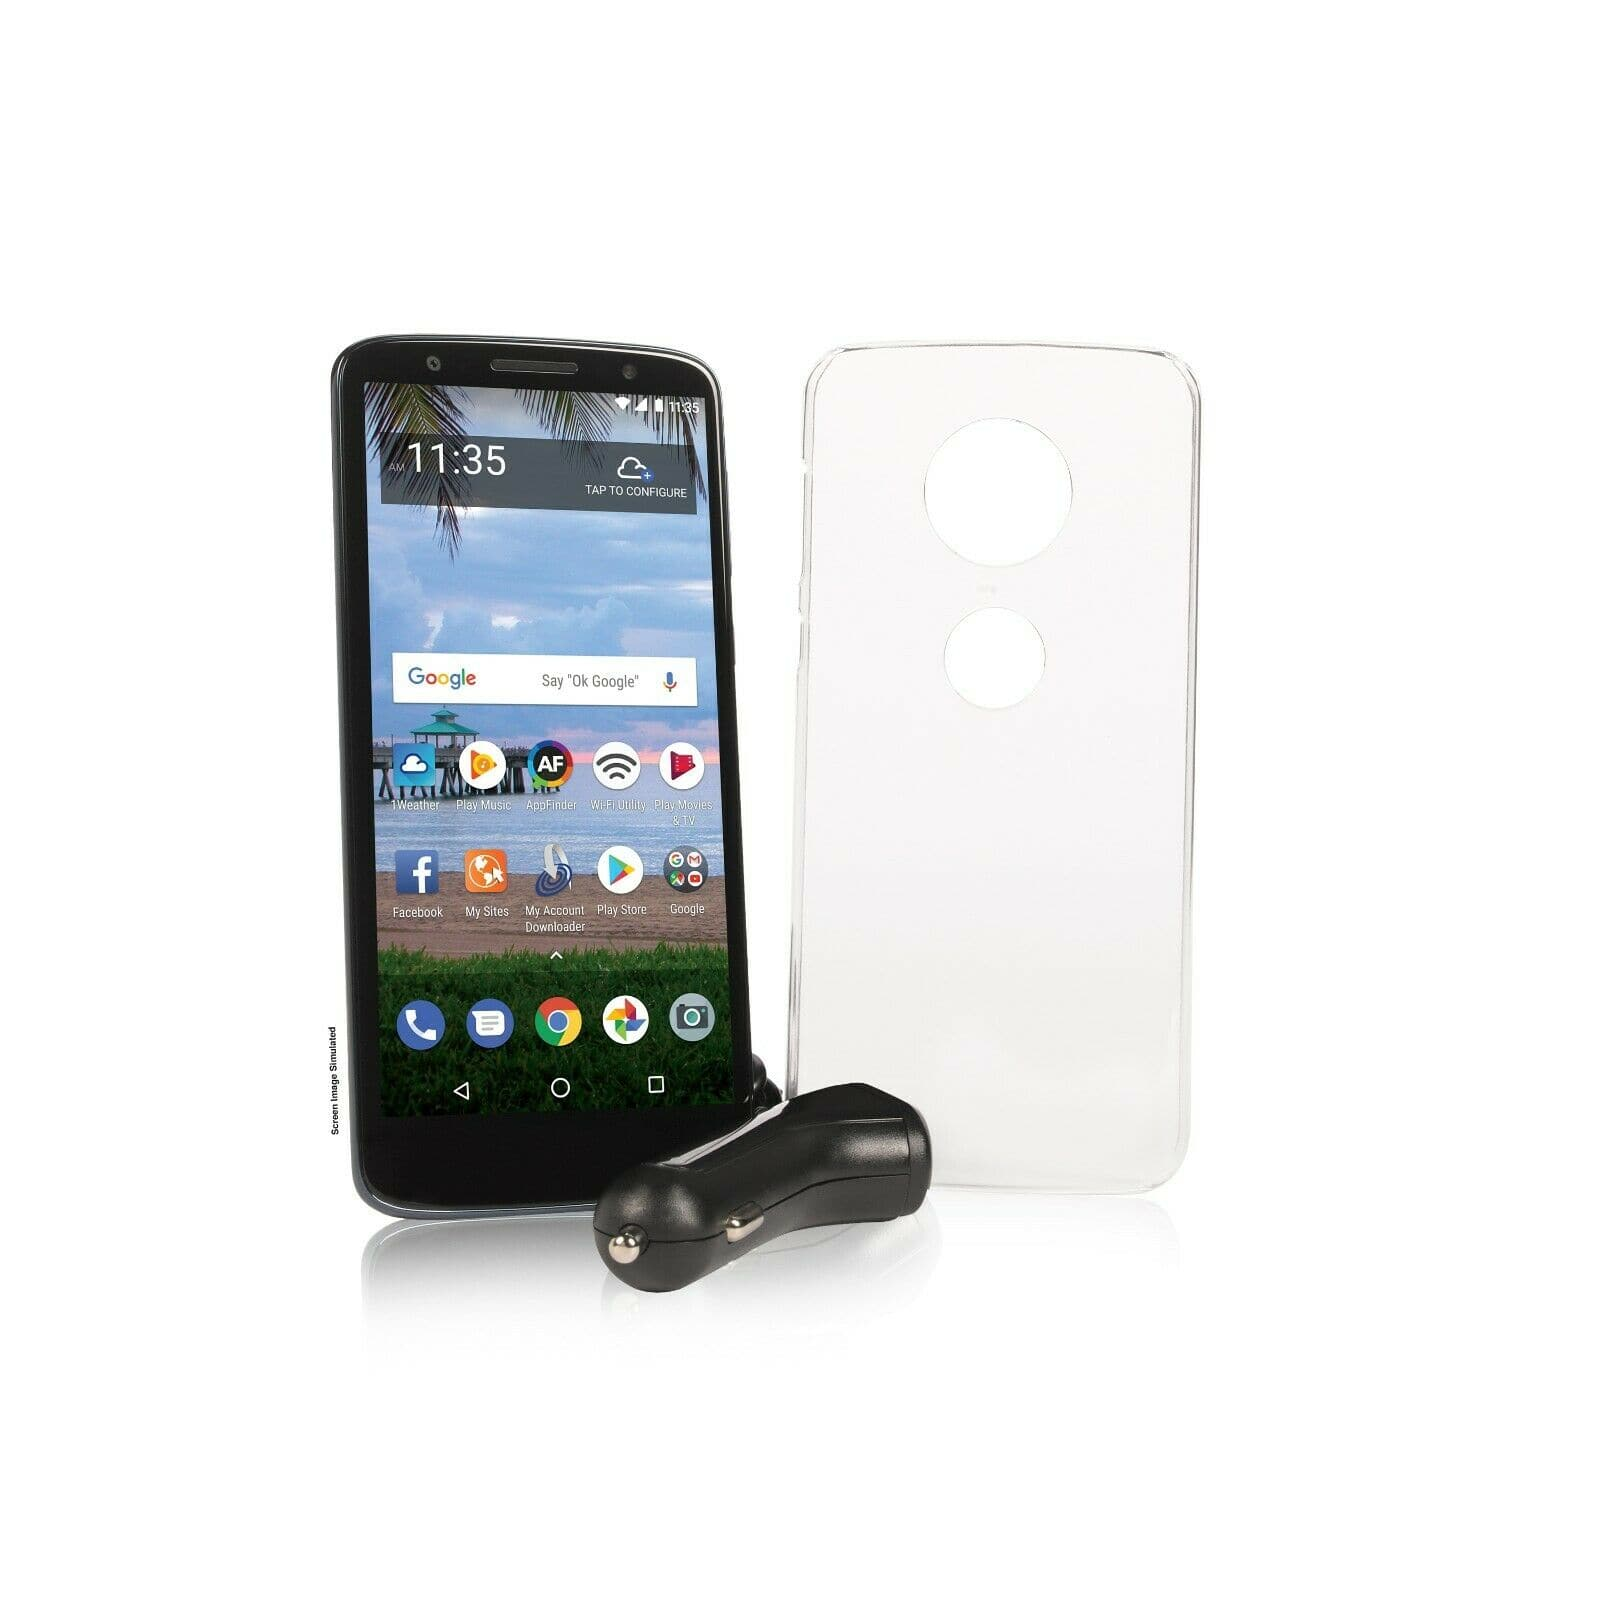 Ebay -Tracfone Moto G6 Cell Phone + 1 Year of Service 1500 MIN/1500 Text/1500MB (PER YEAR) $69.99 + tax